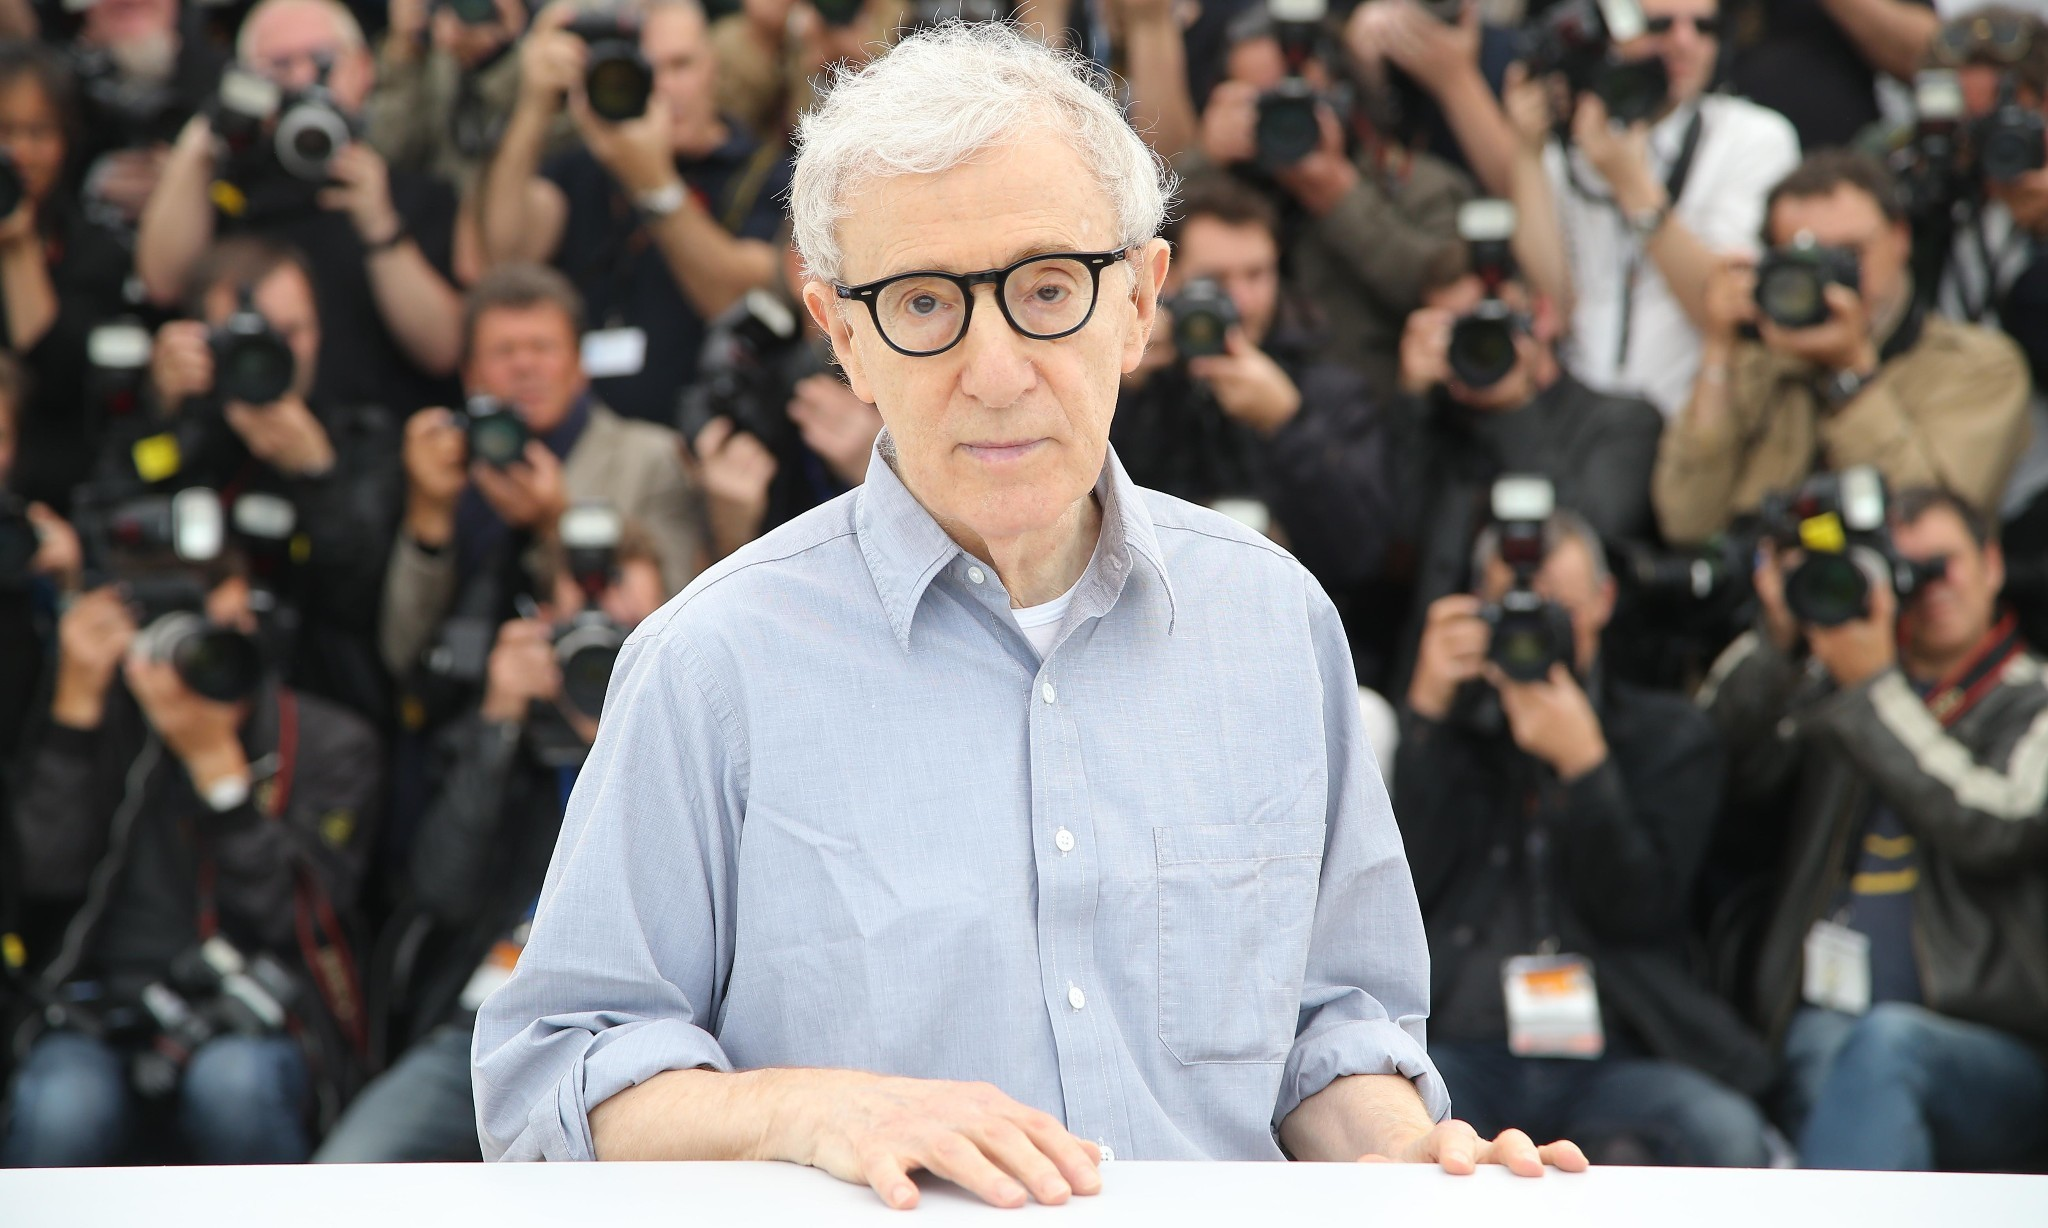 Woody Allen: 'There are traumas in life that weaken us. That's what has happened to me'